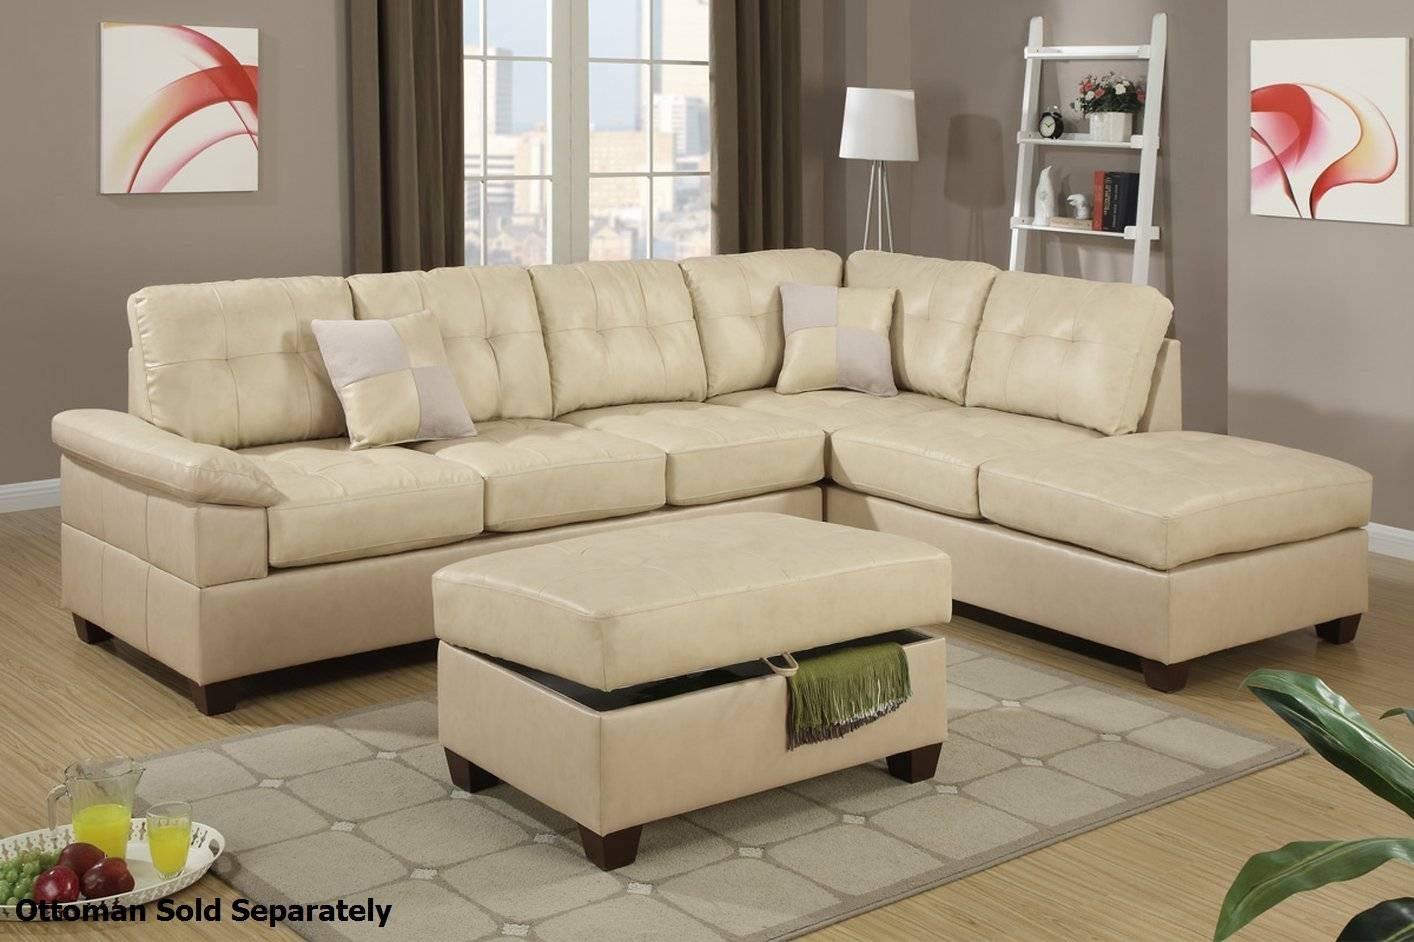 Furniture: Luxury Leather Sectional Sofa For Elegant Living Room Throughout Ivory Leather Sofas (View 8 of 30)